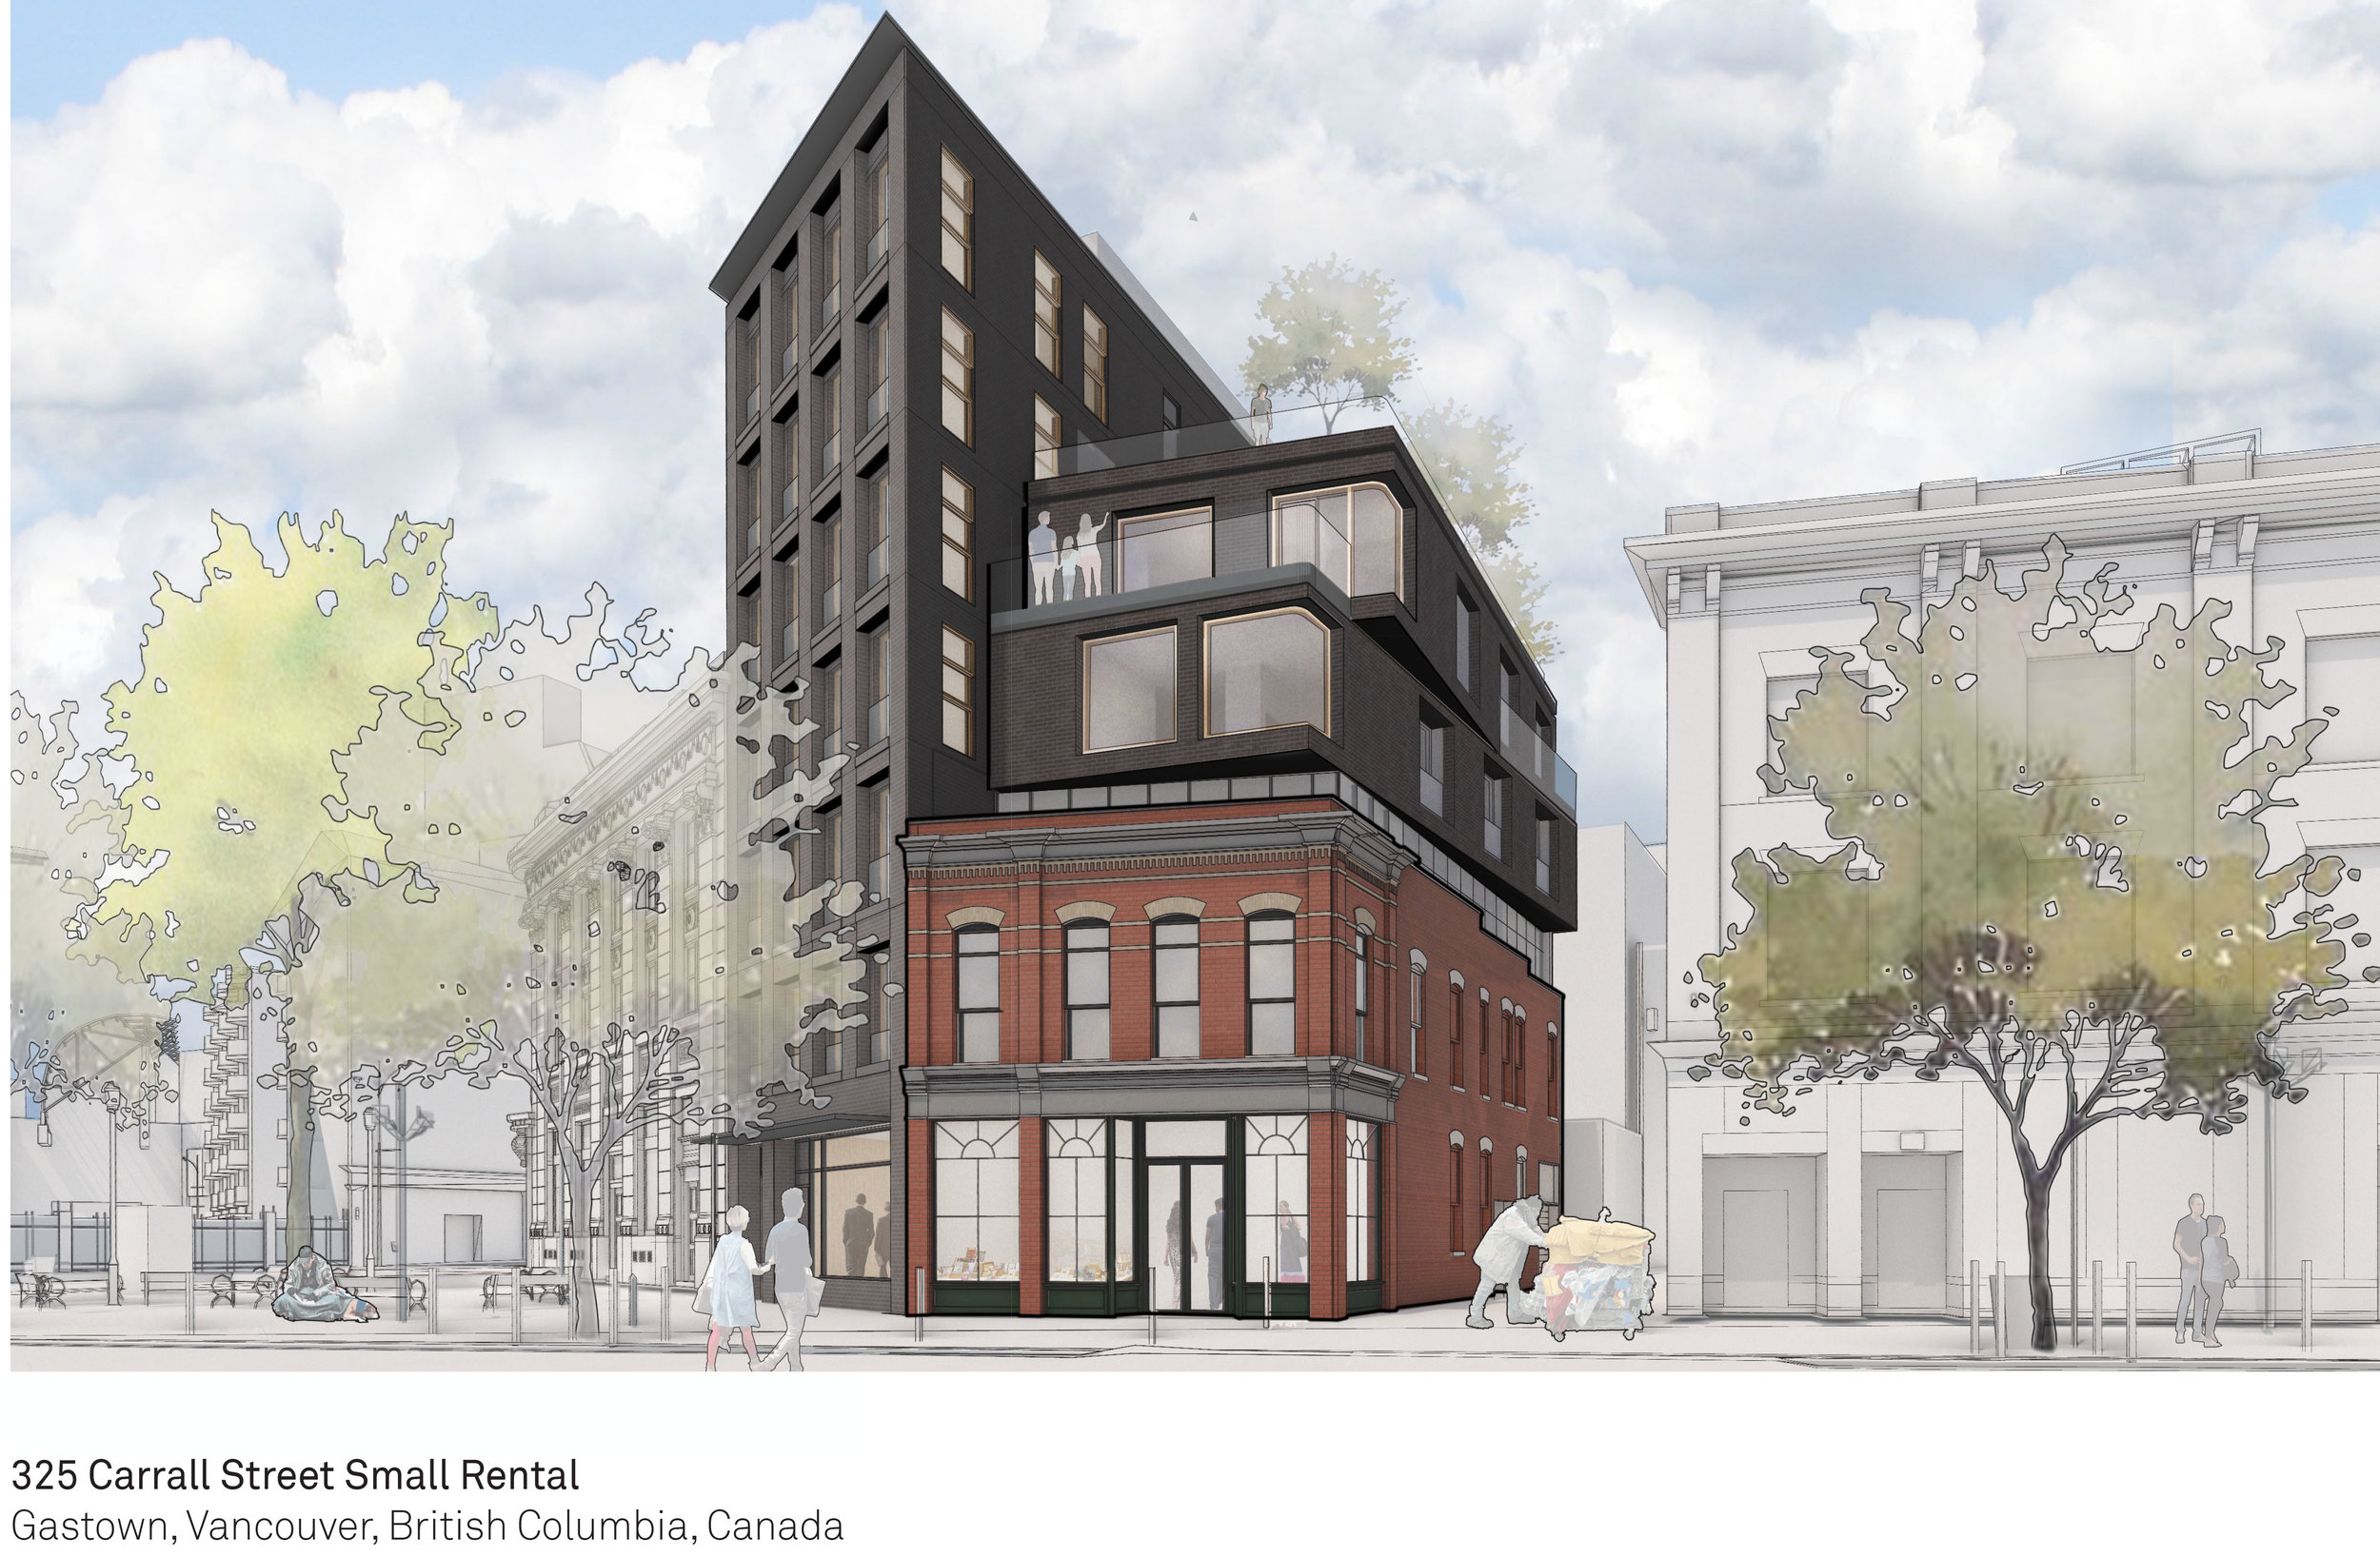 325 Carrall Street Small Rental-1.jpg